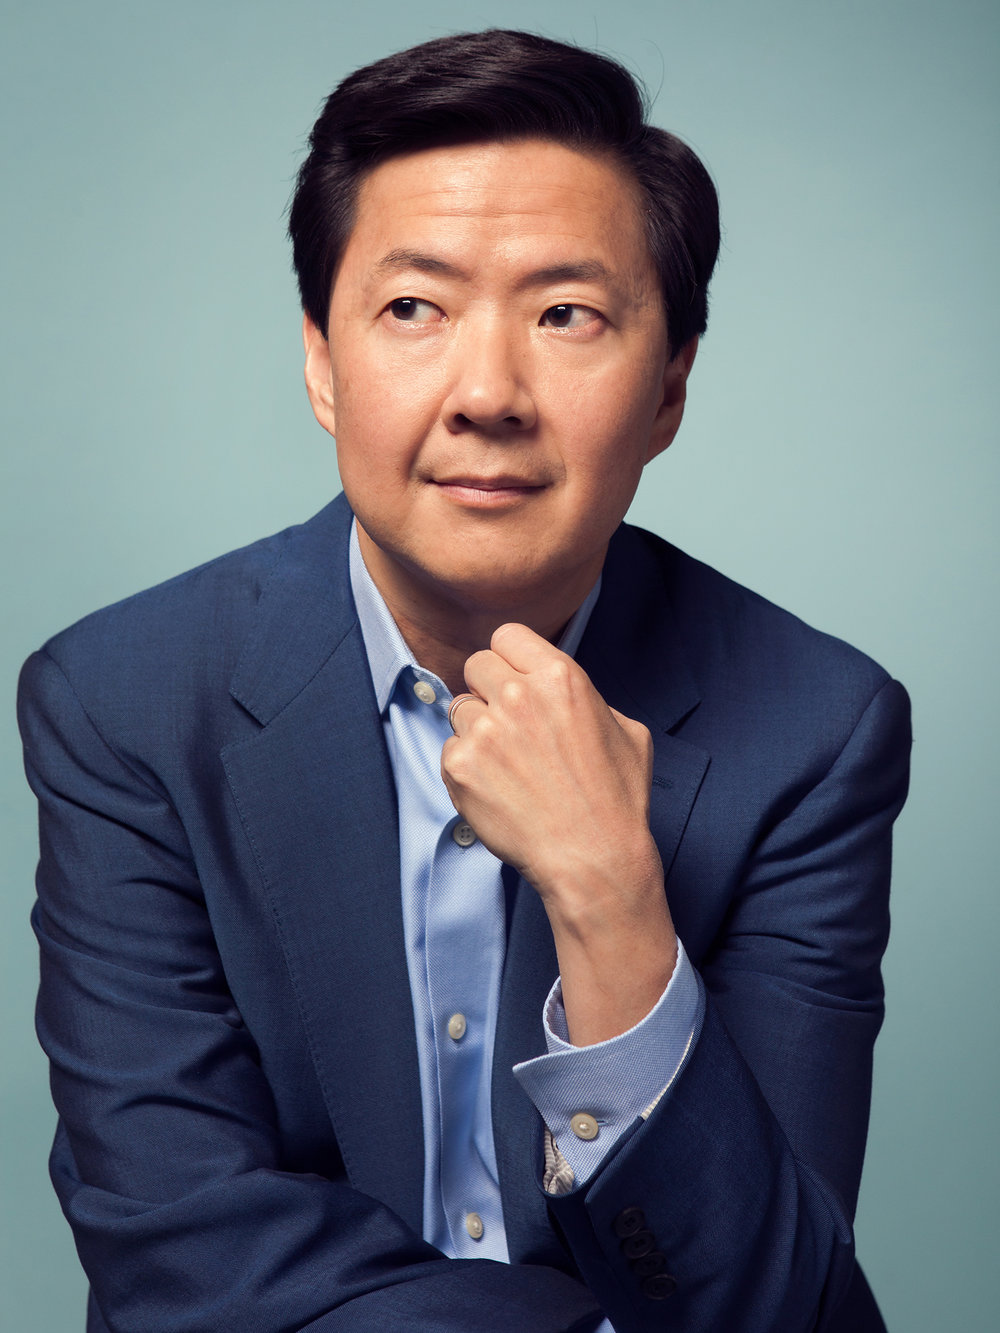 Ken Jeong, Actor, Comedian